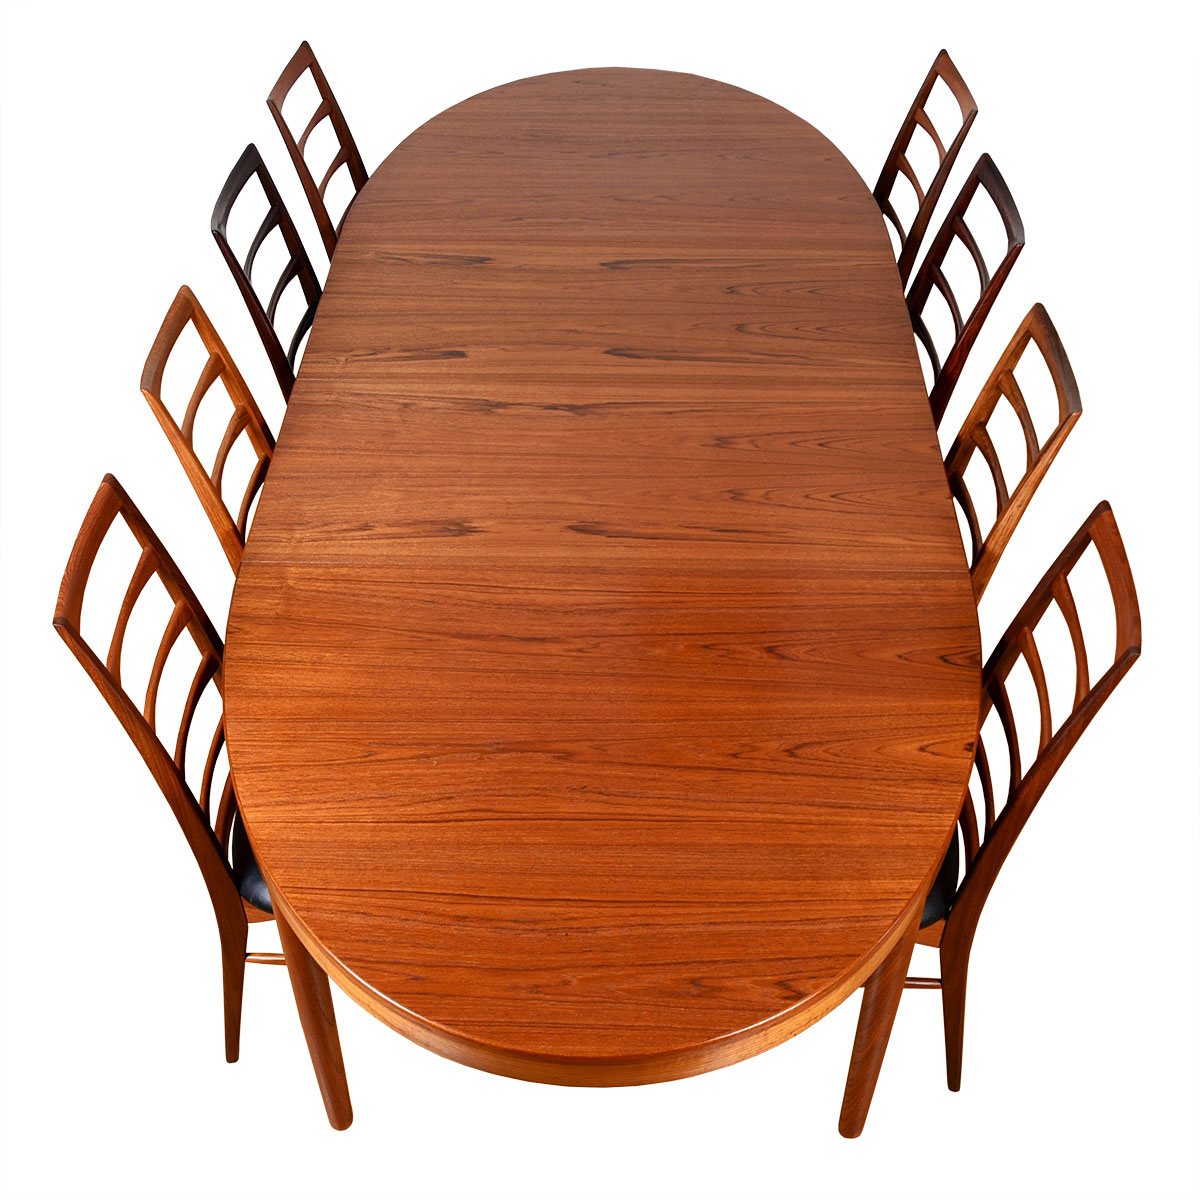 Oval Danish Modern Thick Teak Expanding Dining Table